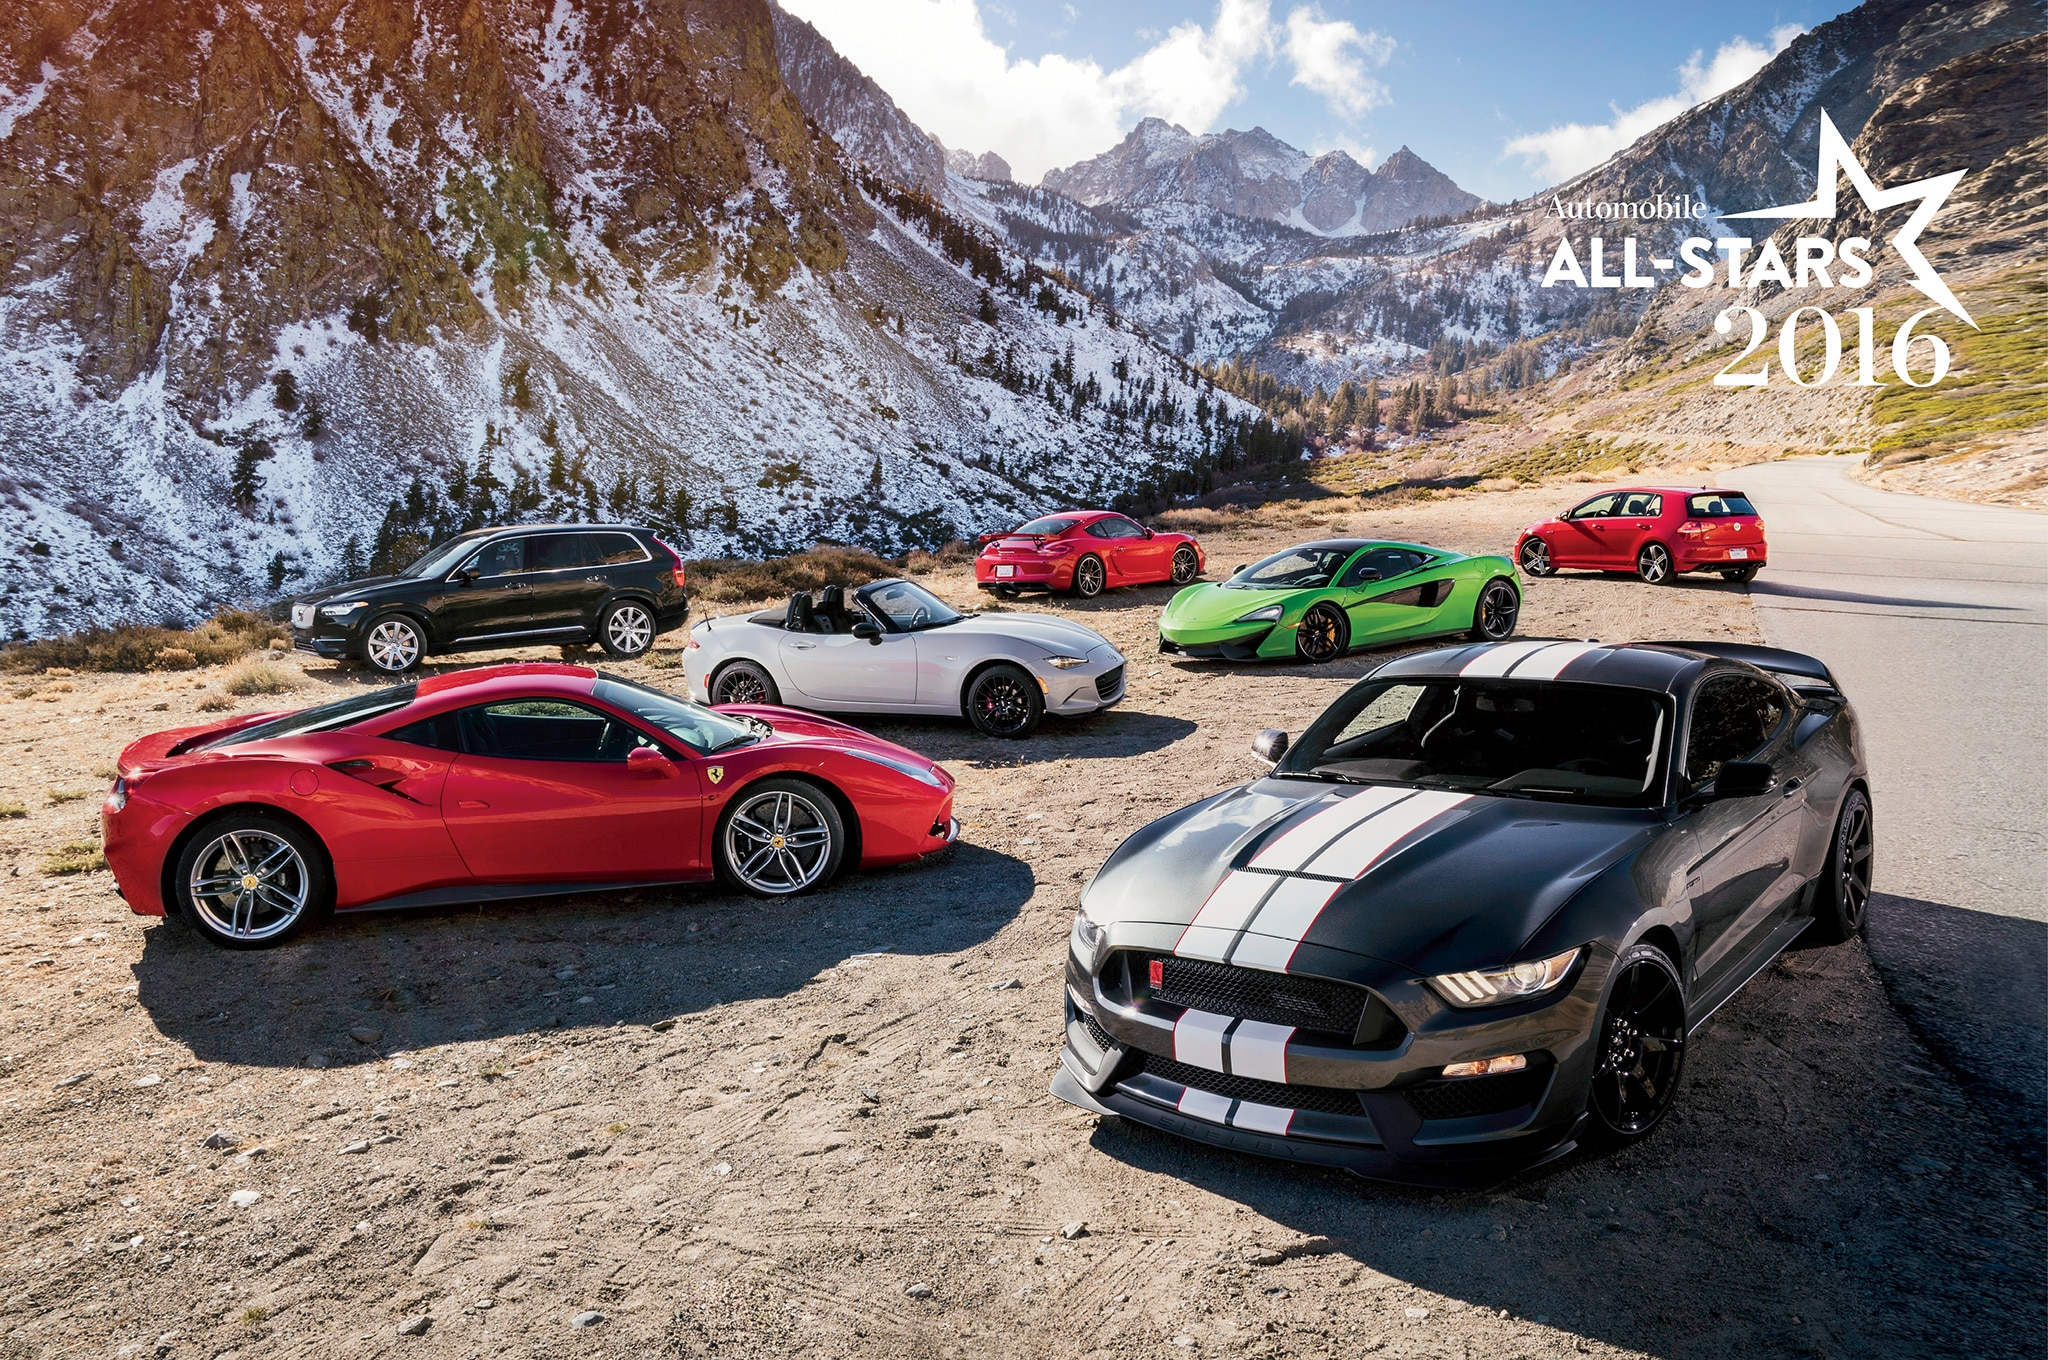 2016 Automobile All Stars Winners Story LEAD - Automobile